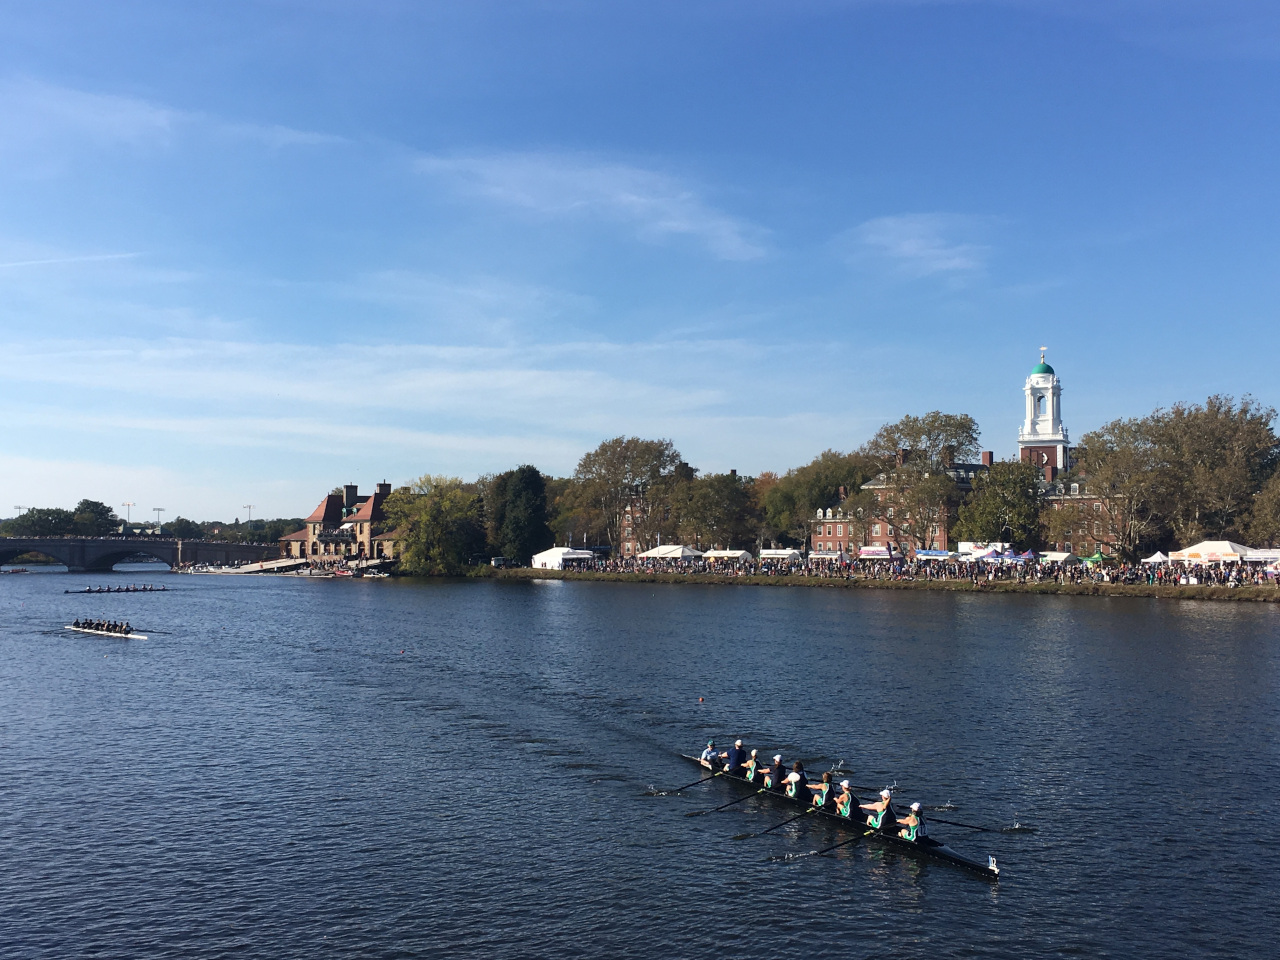 Charles River Esplanade is one of the top Boston attractions. Discover offbeat things to do in Boston, famous Boston activities, and where to eat in Boston USA from this article